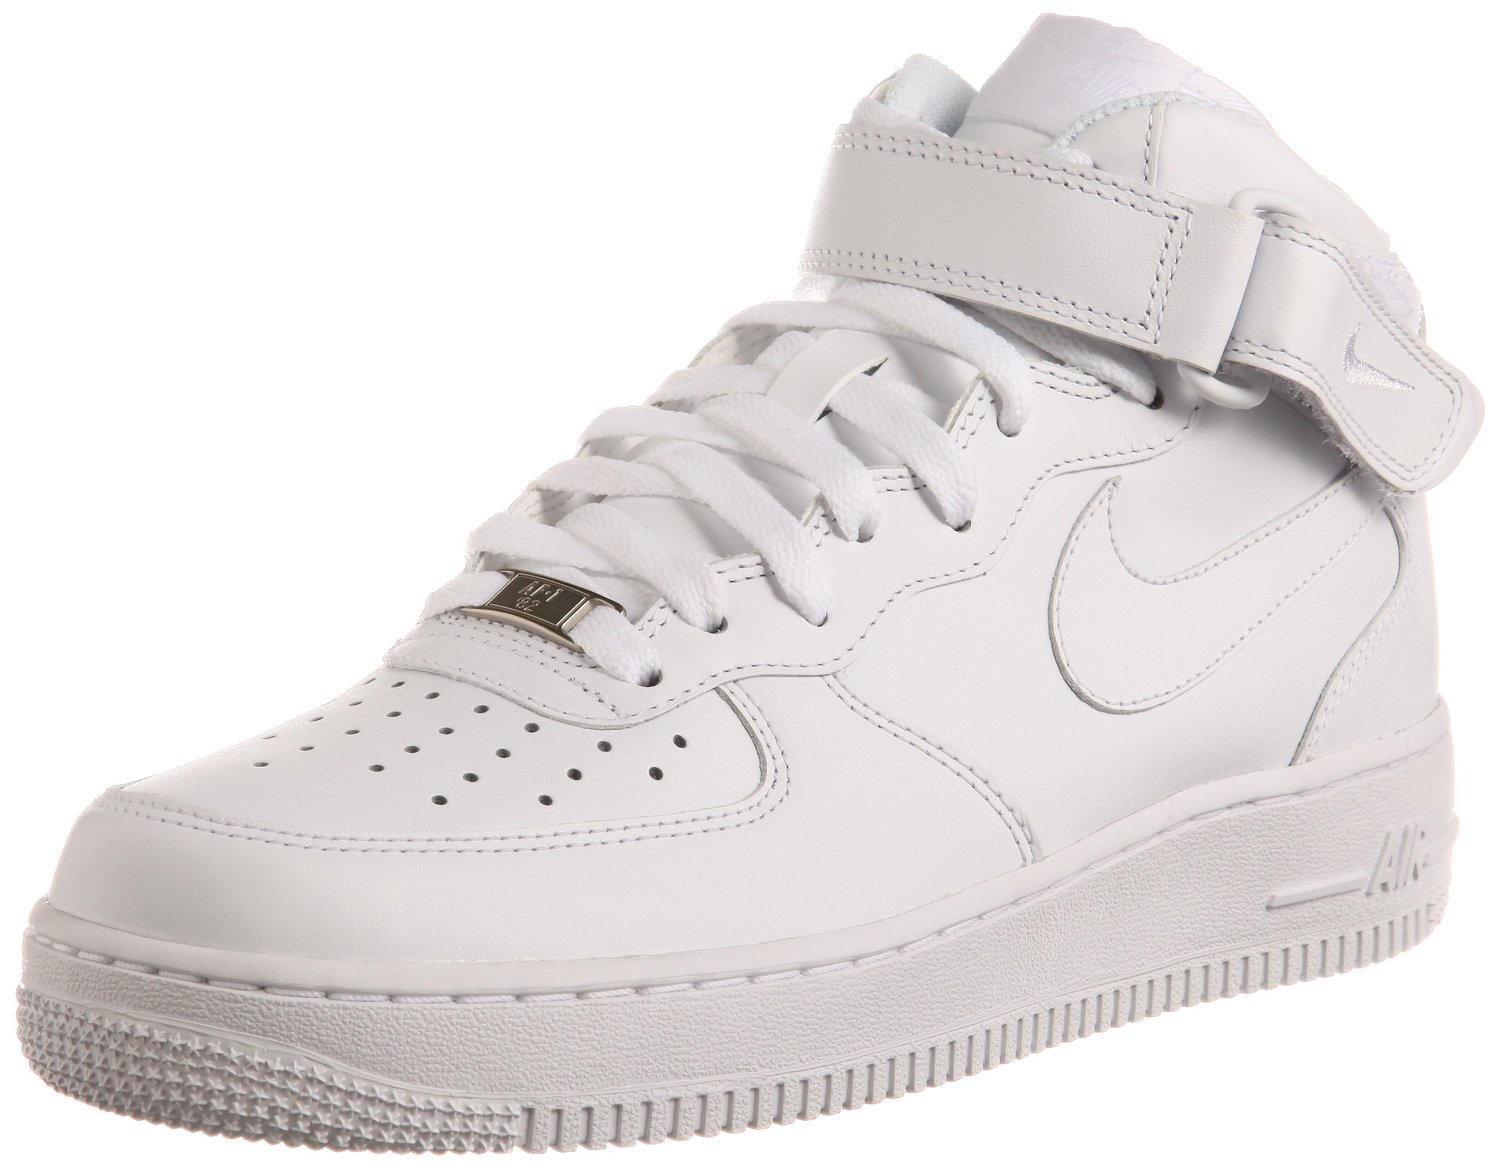 Buy Nike Men's Air Force 1 Mid '07 Basketball Shoe ...